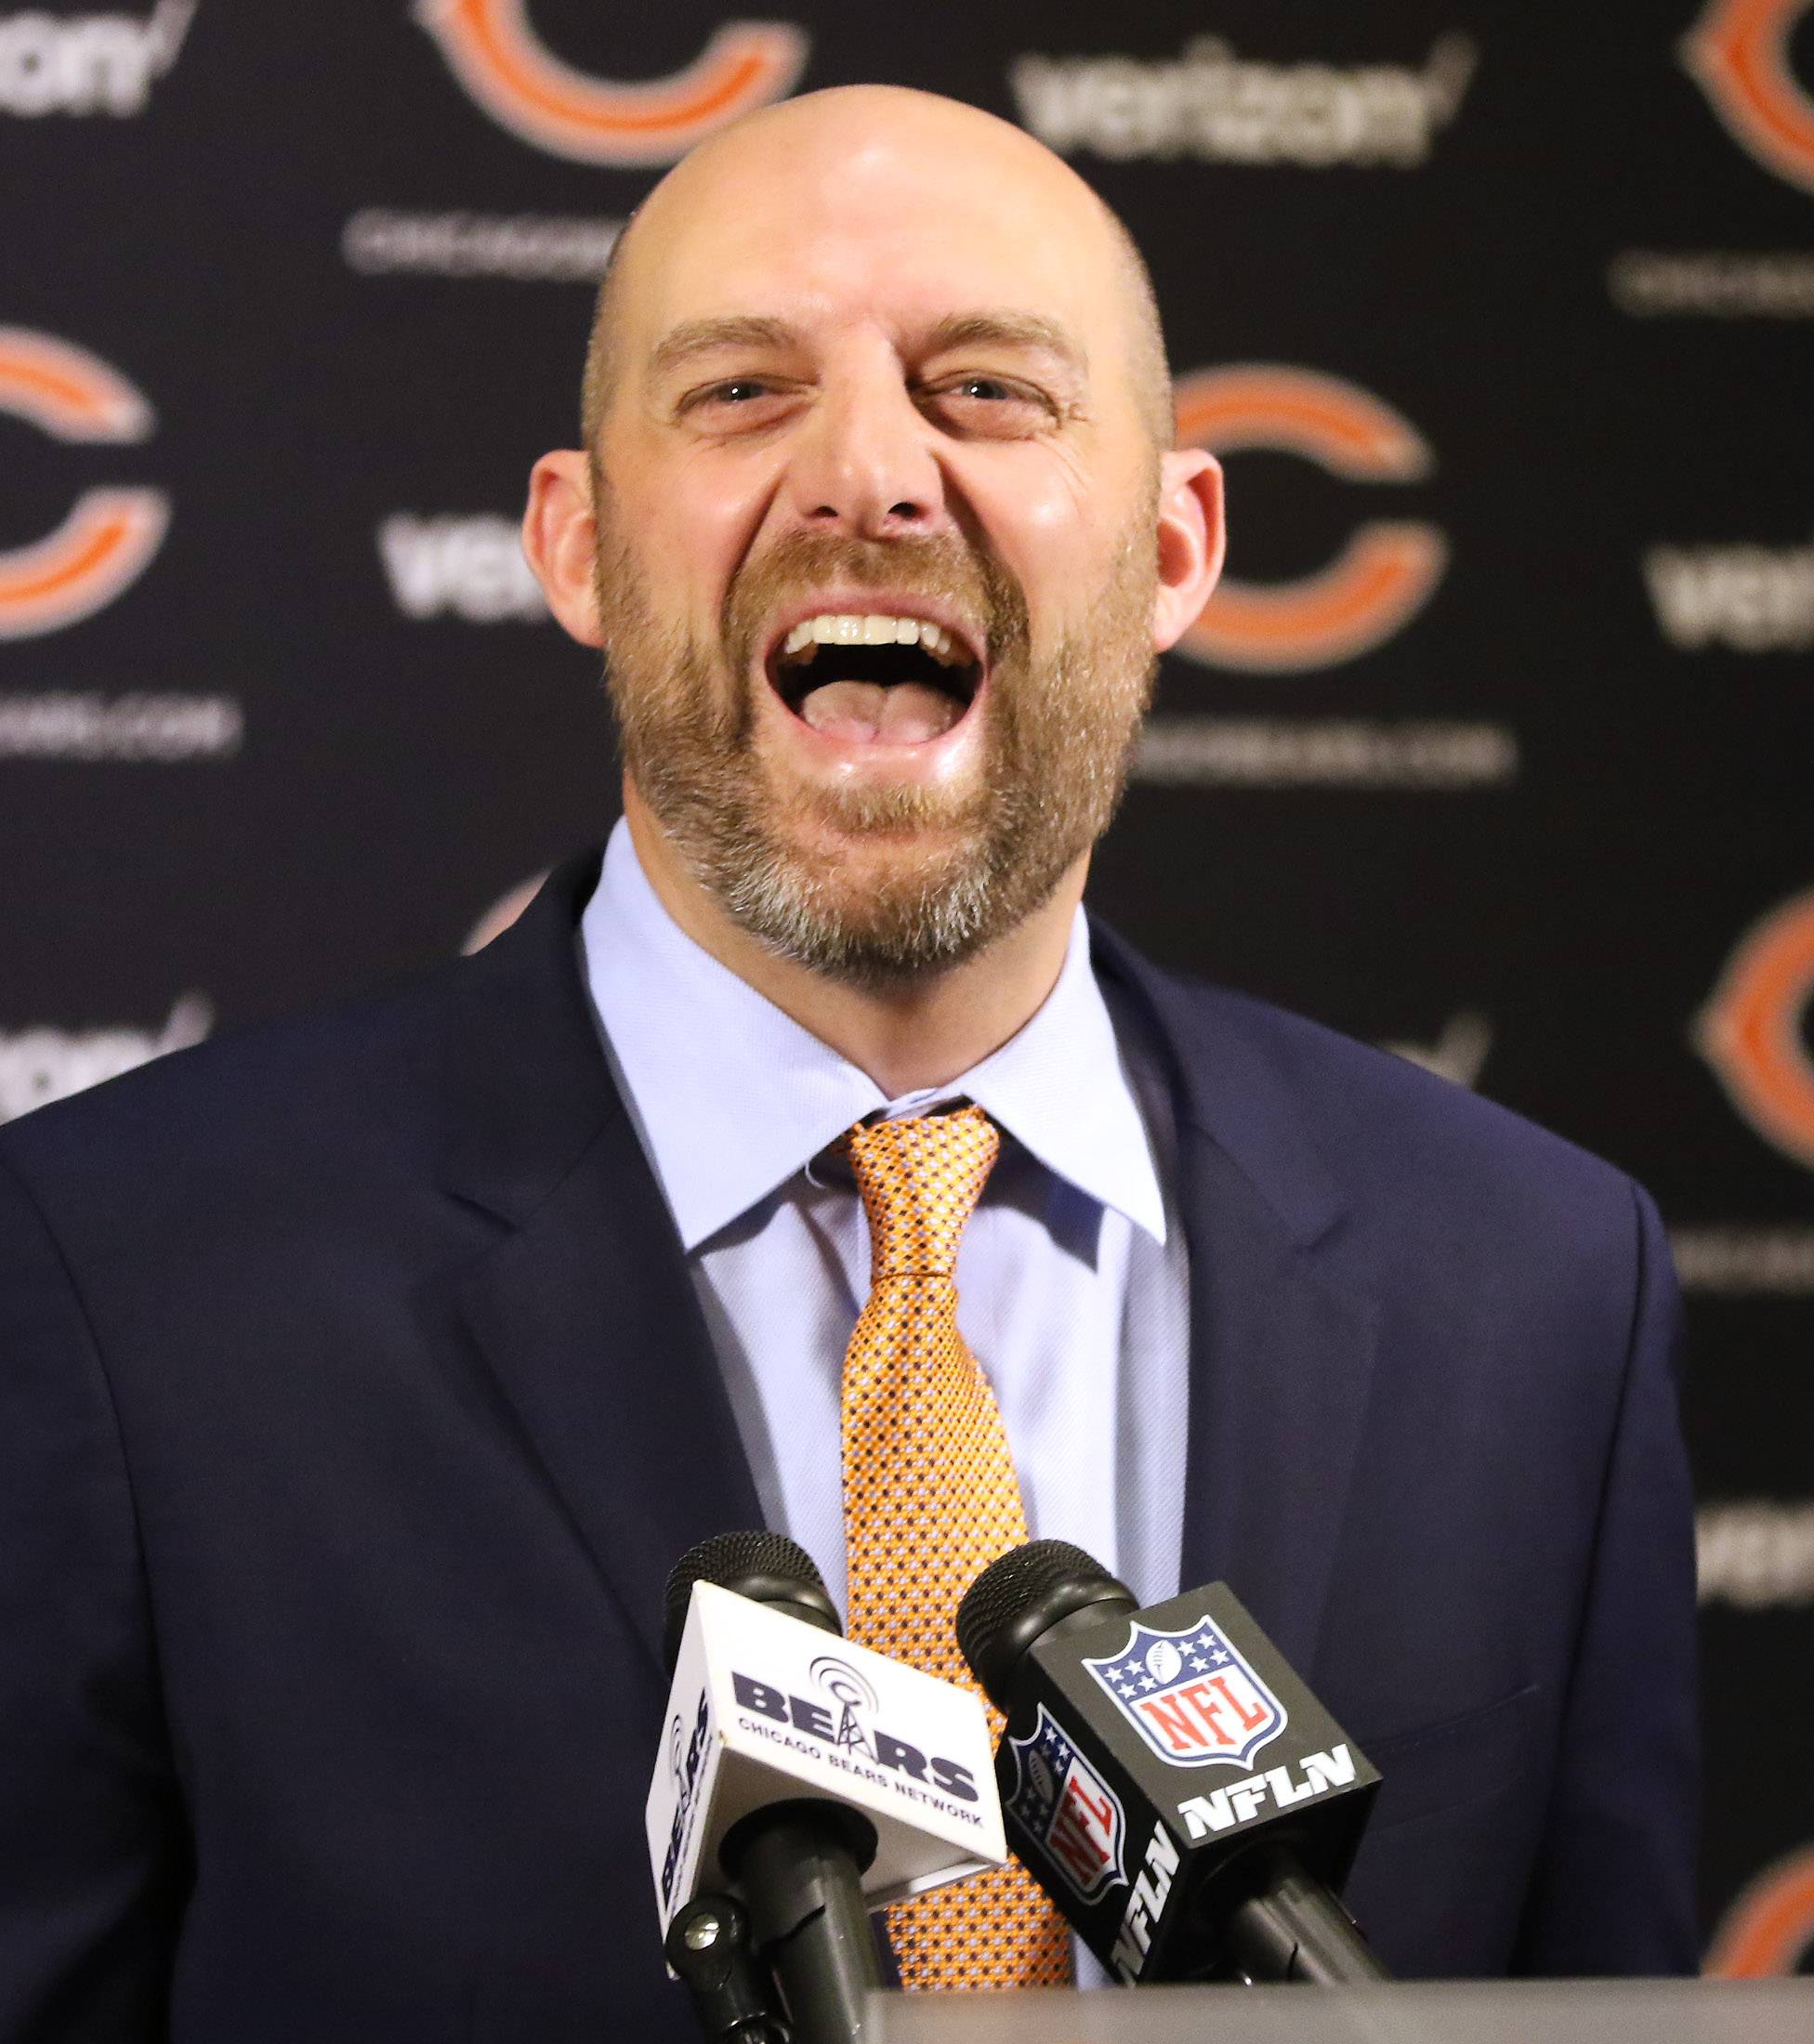 Matt Nagy enjoys a lighter moment while talking about the pressure of becoming a head coach in the NFL. Nagy is the 16th head coach in Bears history.